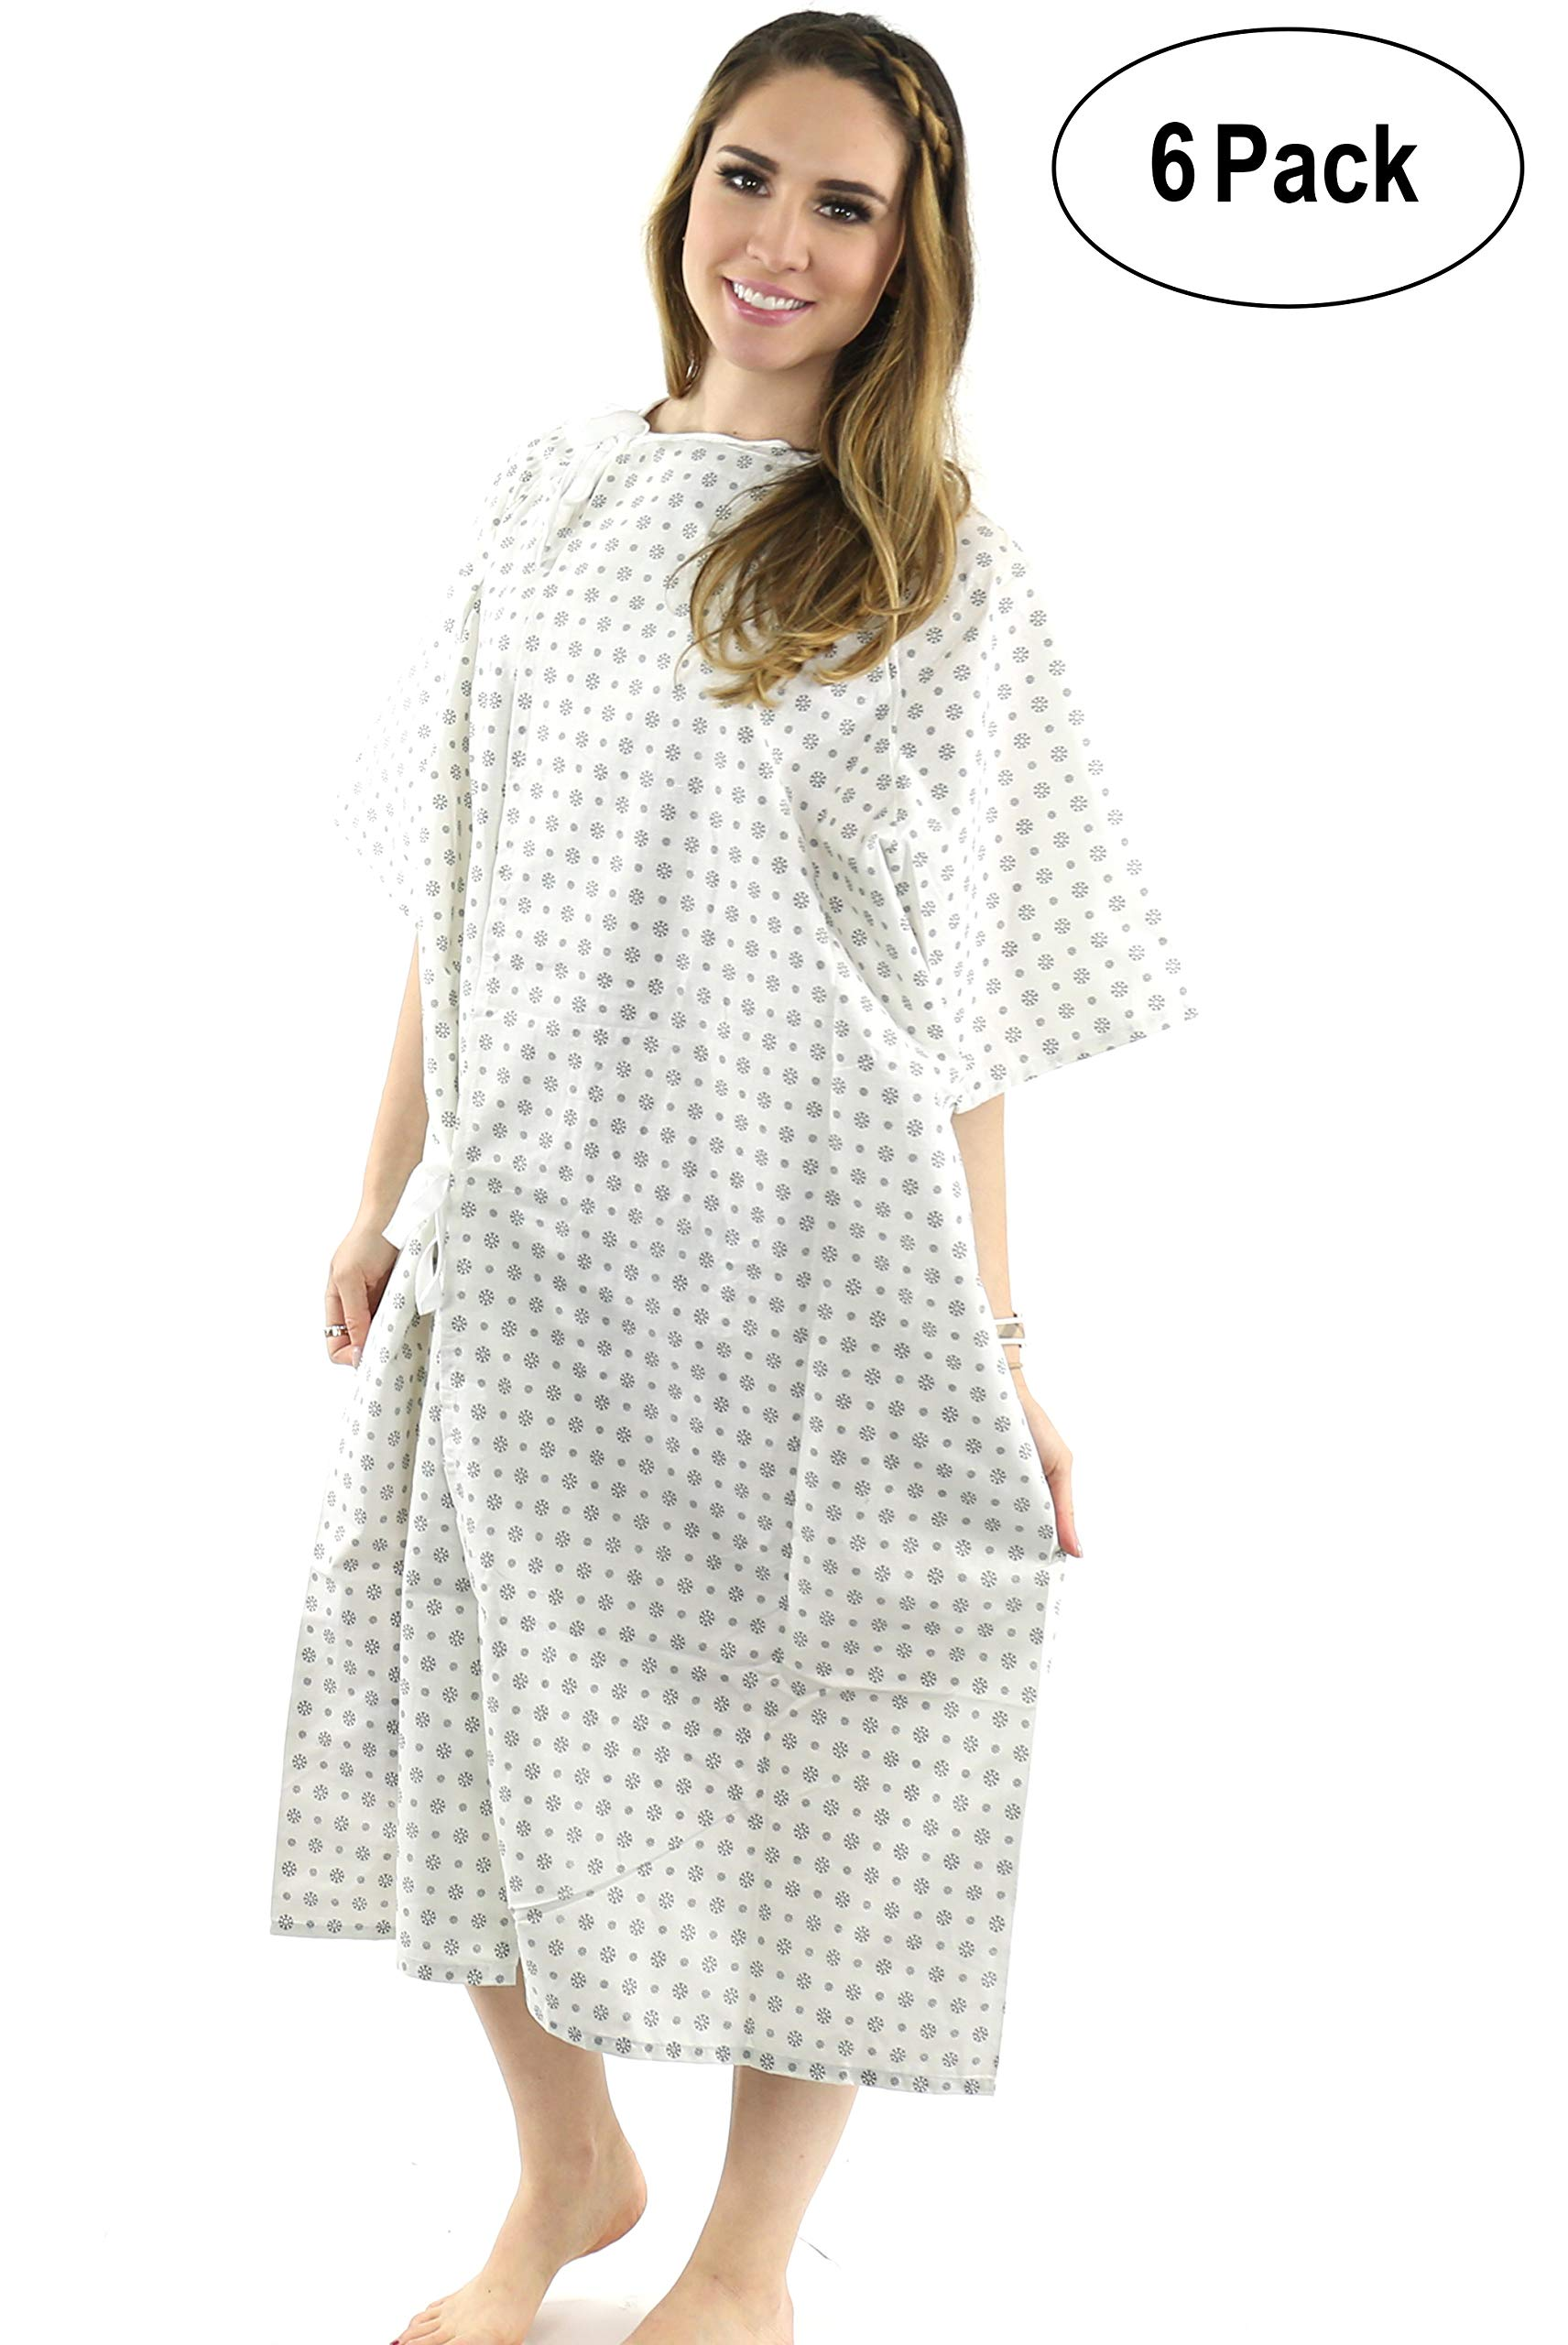 Hospital Gown (6 Pack) Cotton Blend , Useful, Fashionable Patient Gowns, Back Tie, 46'' Long & 66'' Wide, Fits All Sizes to 2xL Sizes Fit Comfortably - Hospital Gown (6 Pack) by Magnus Care